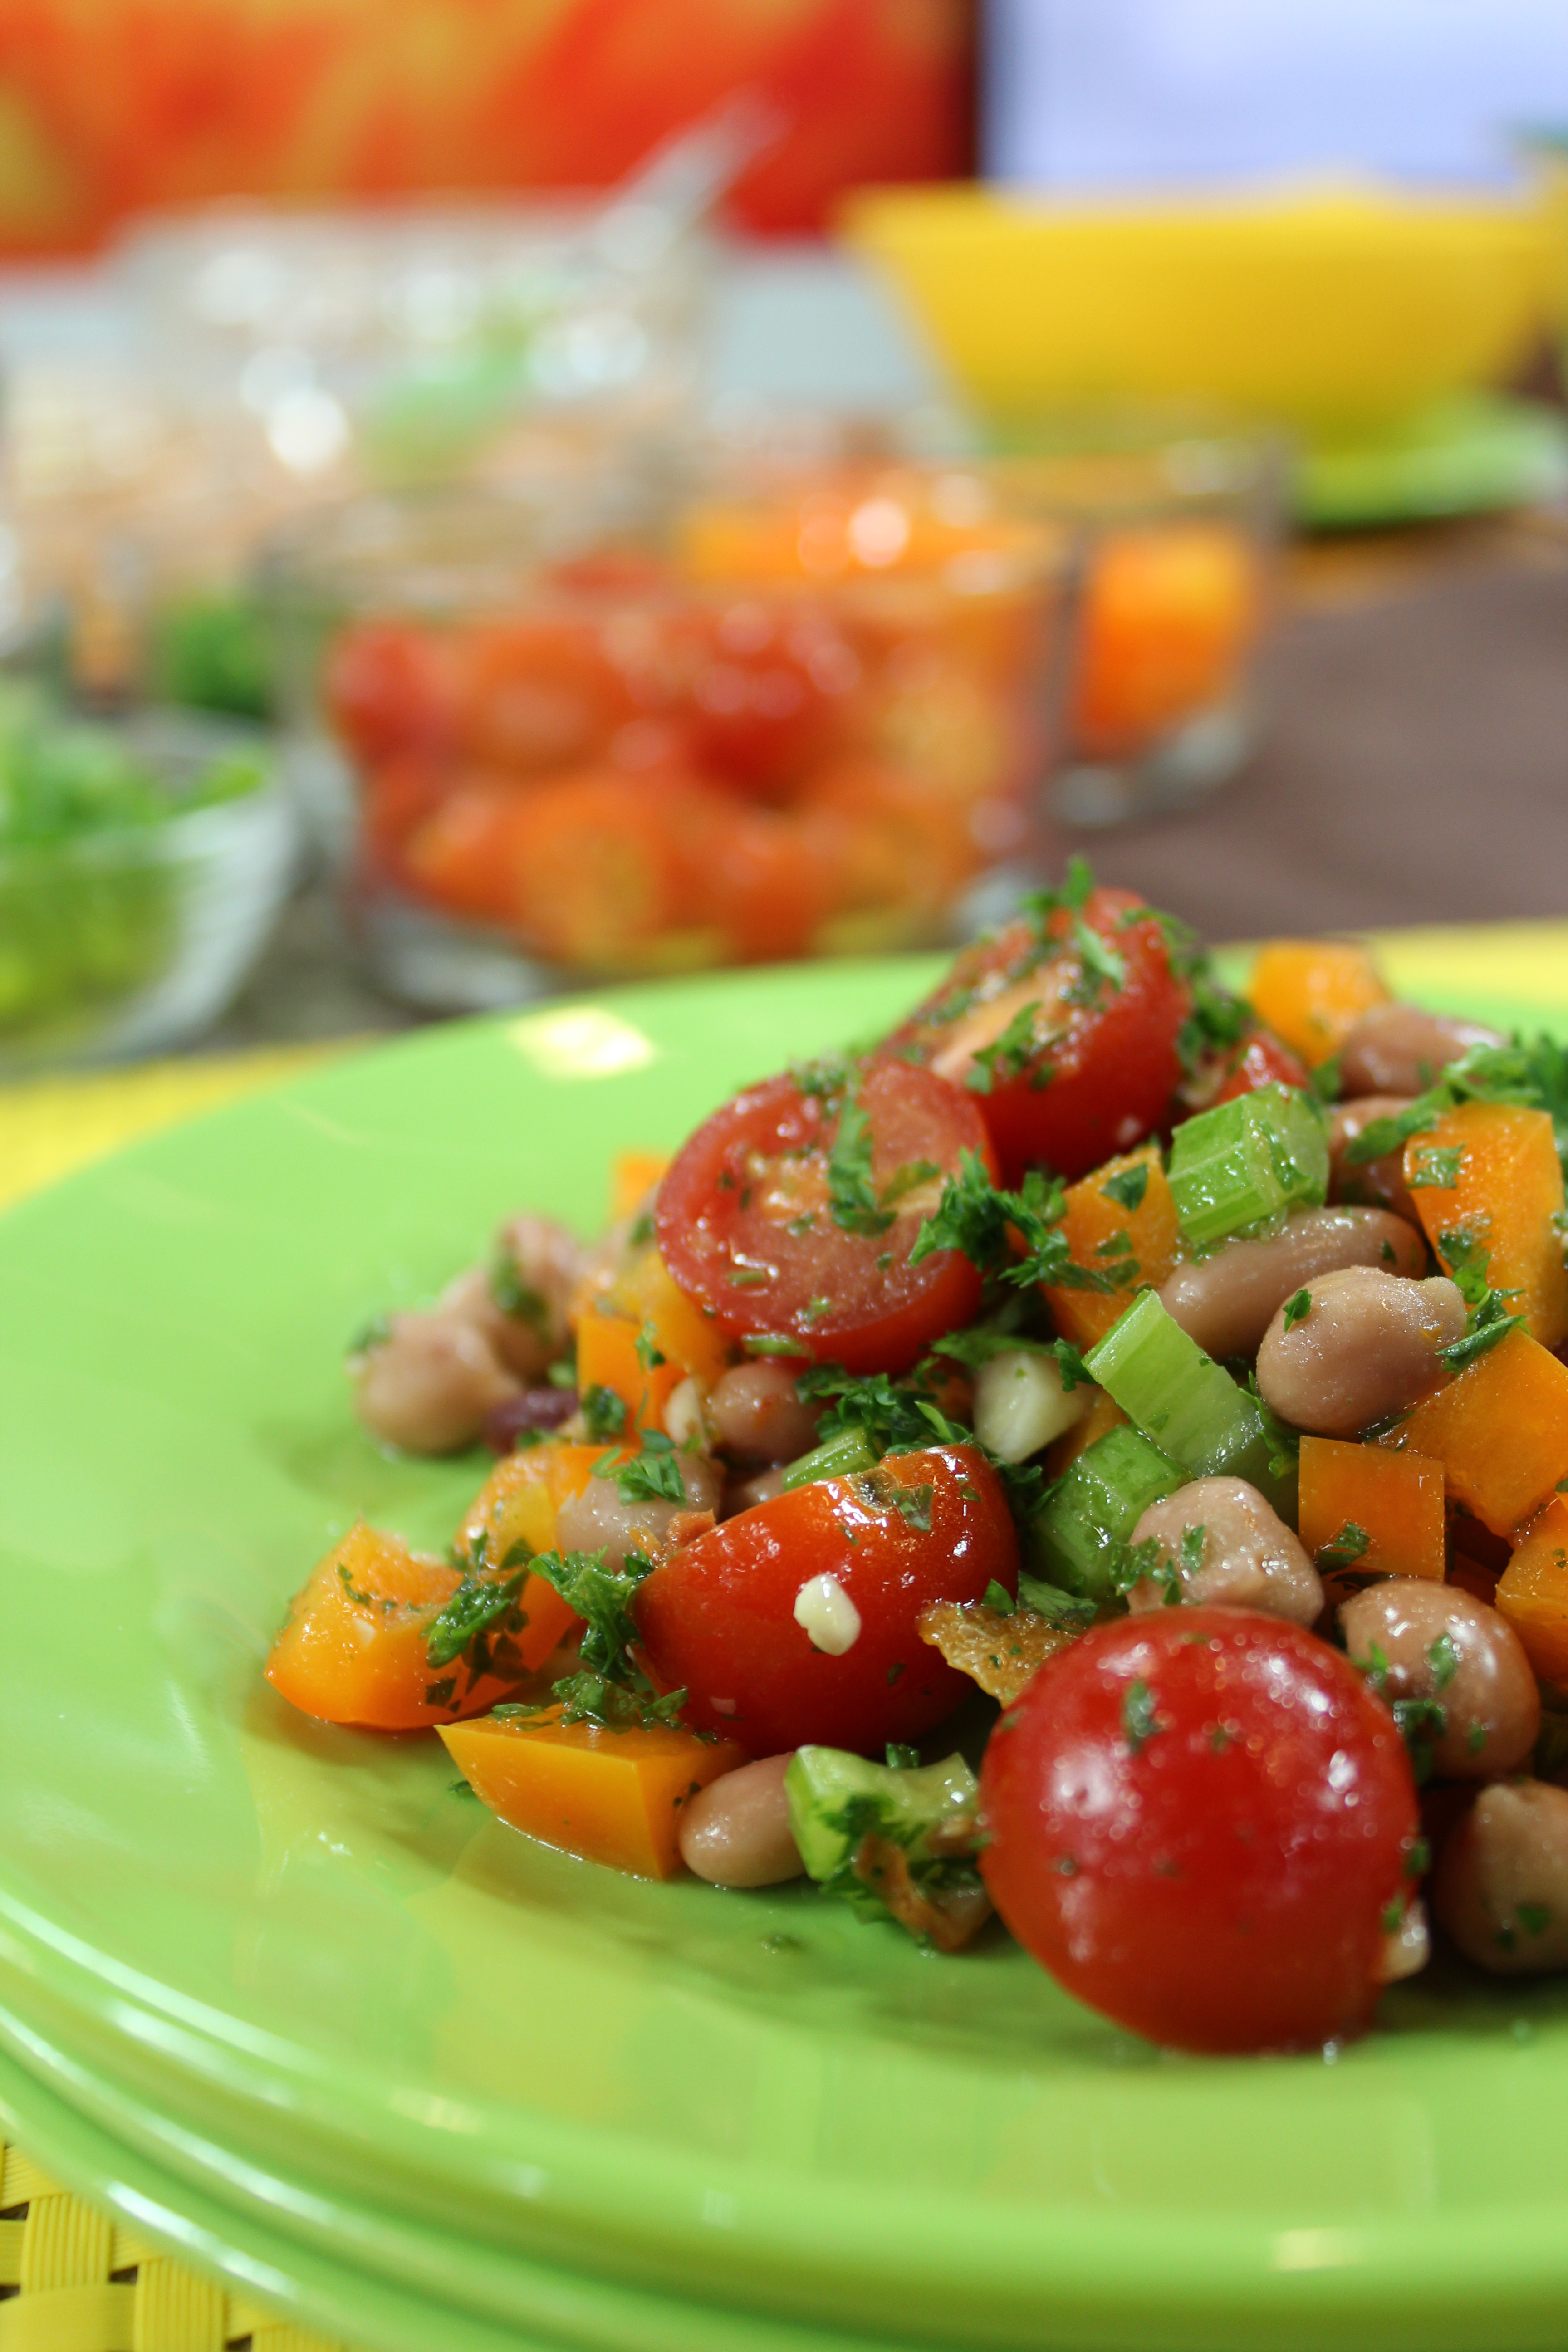 Mixed Bean Salad picture by Mairlyn Smith